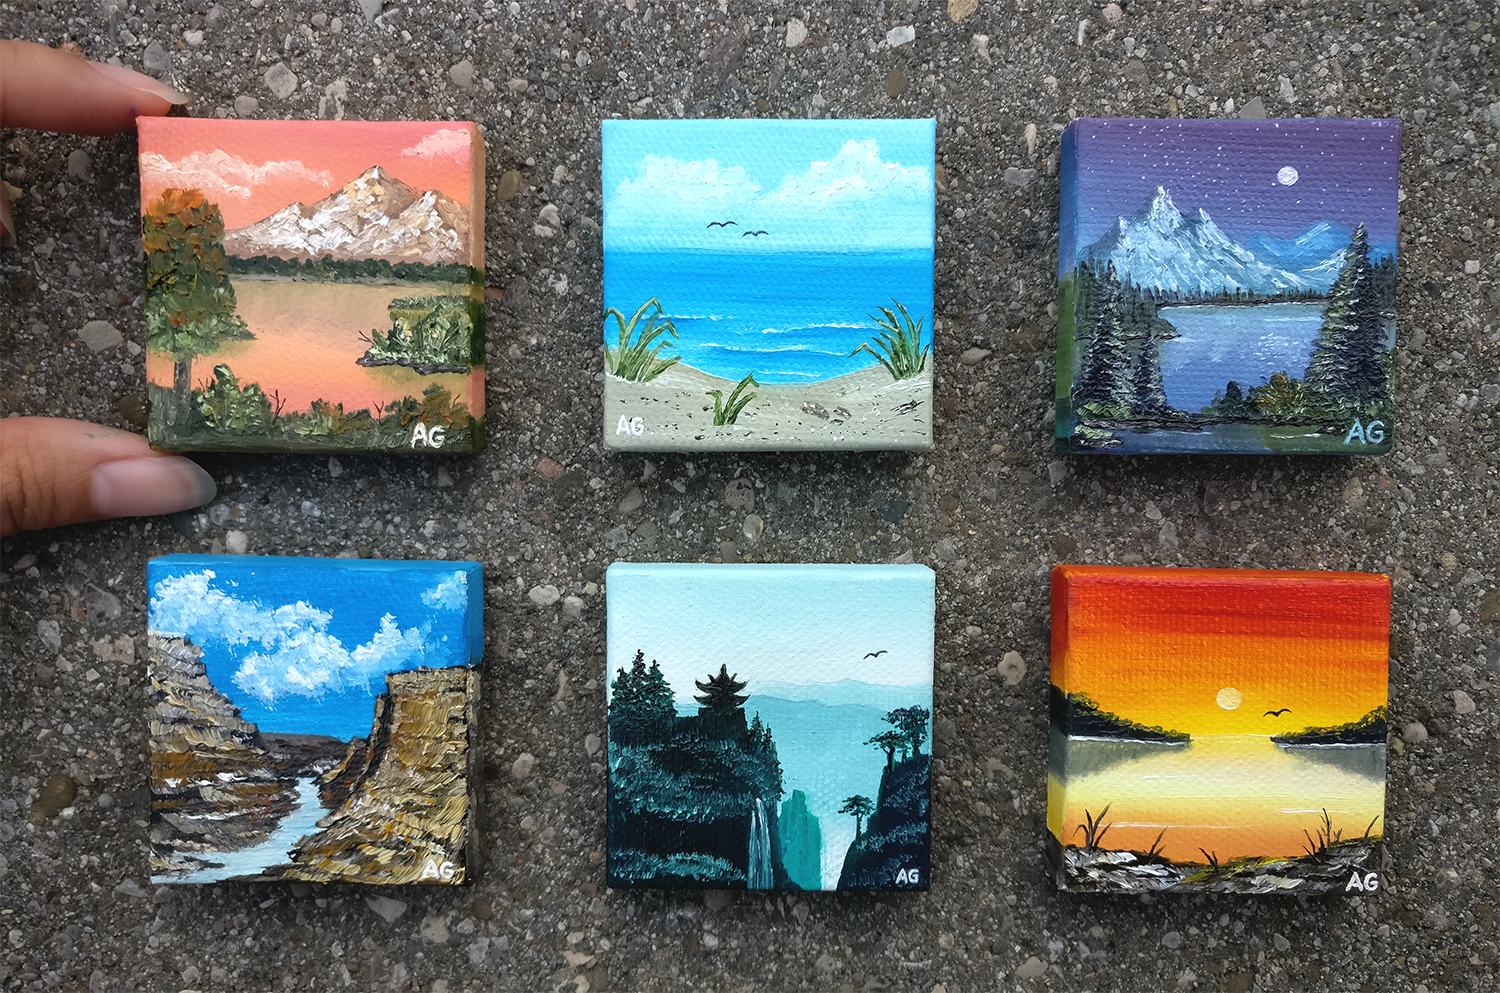 Mini canvases oil paint bob ross 2x2 inches http ift tt 2bzwq4m